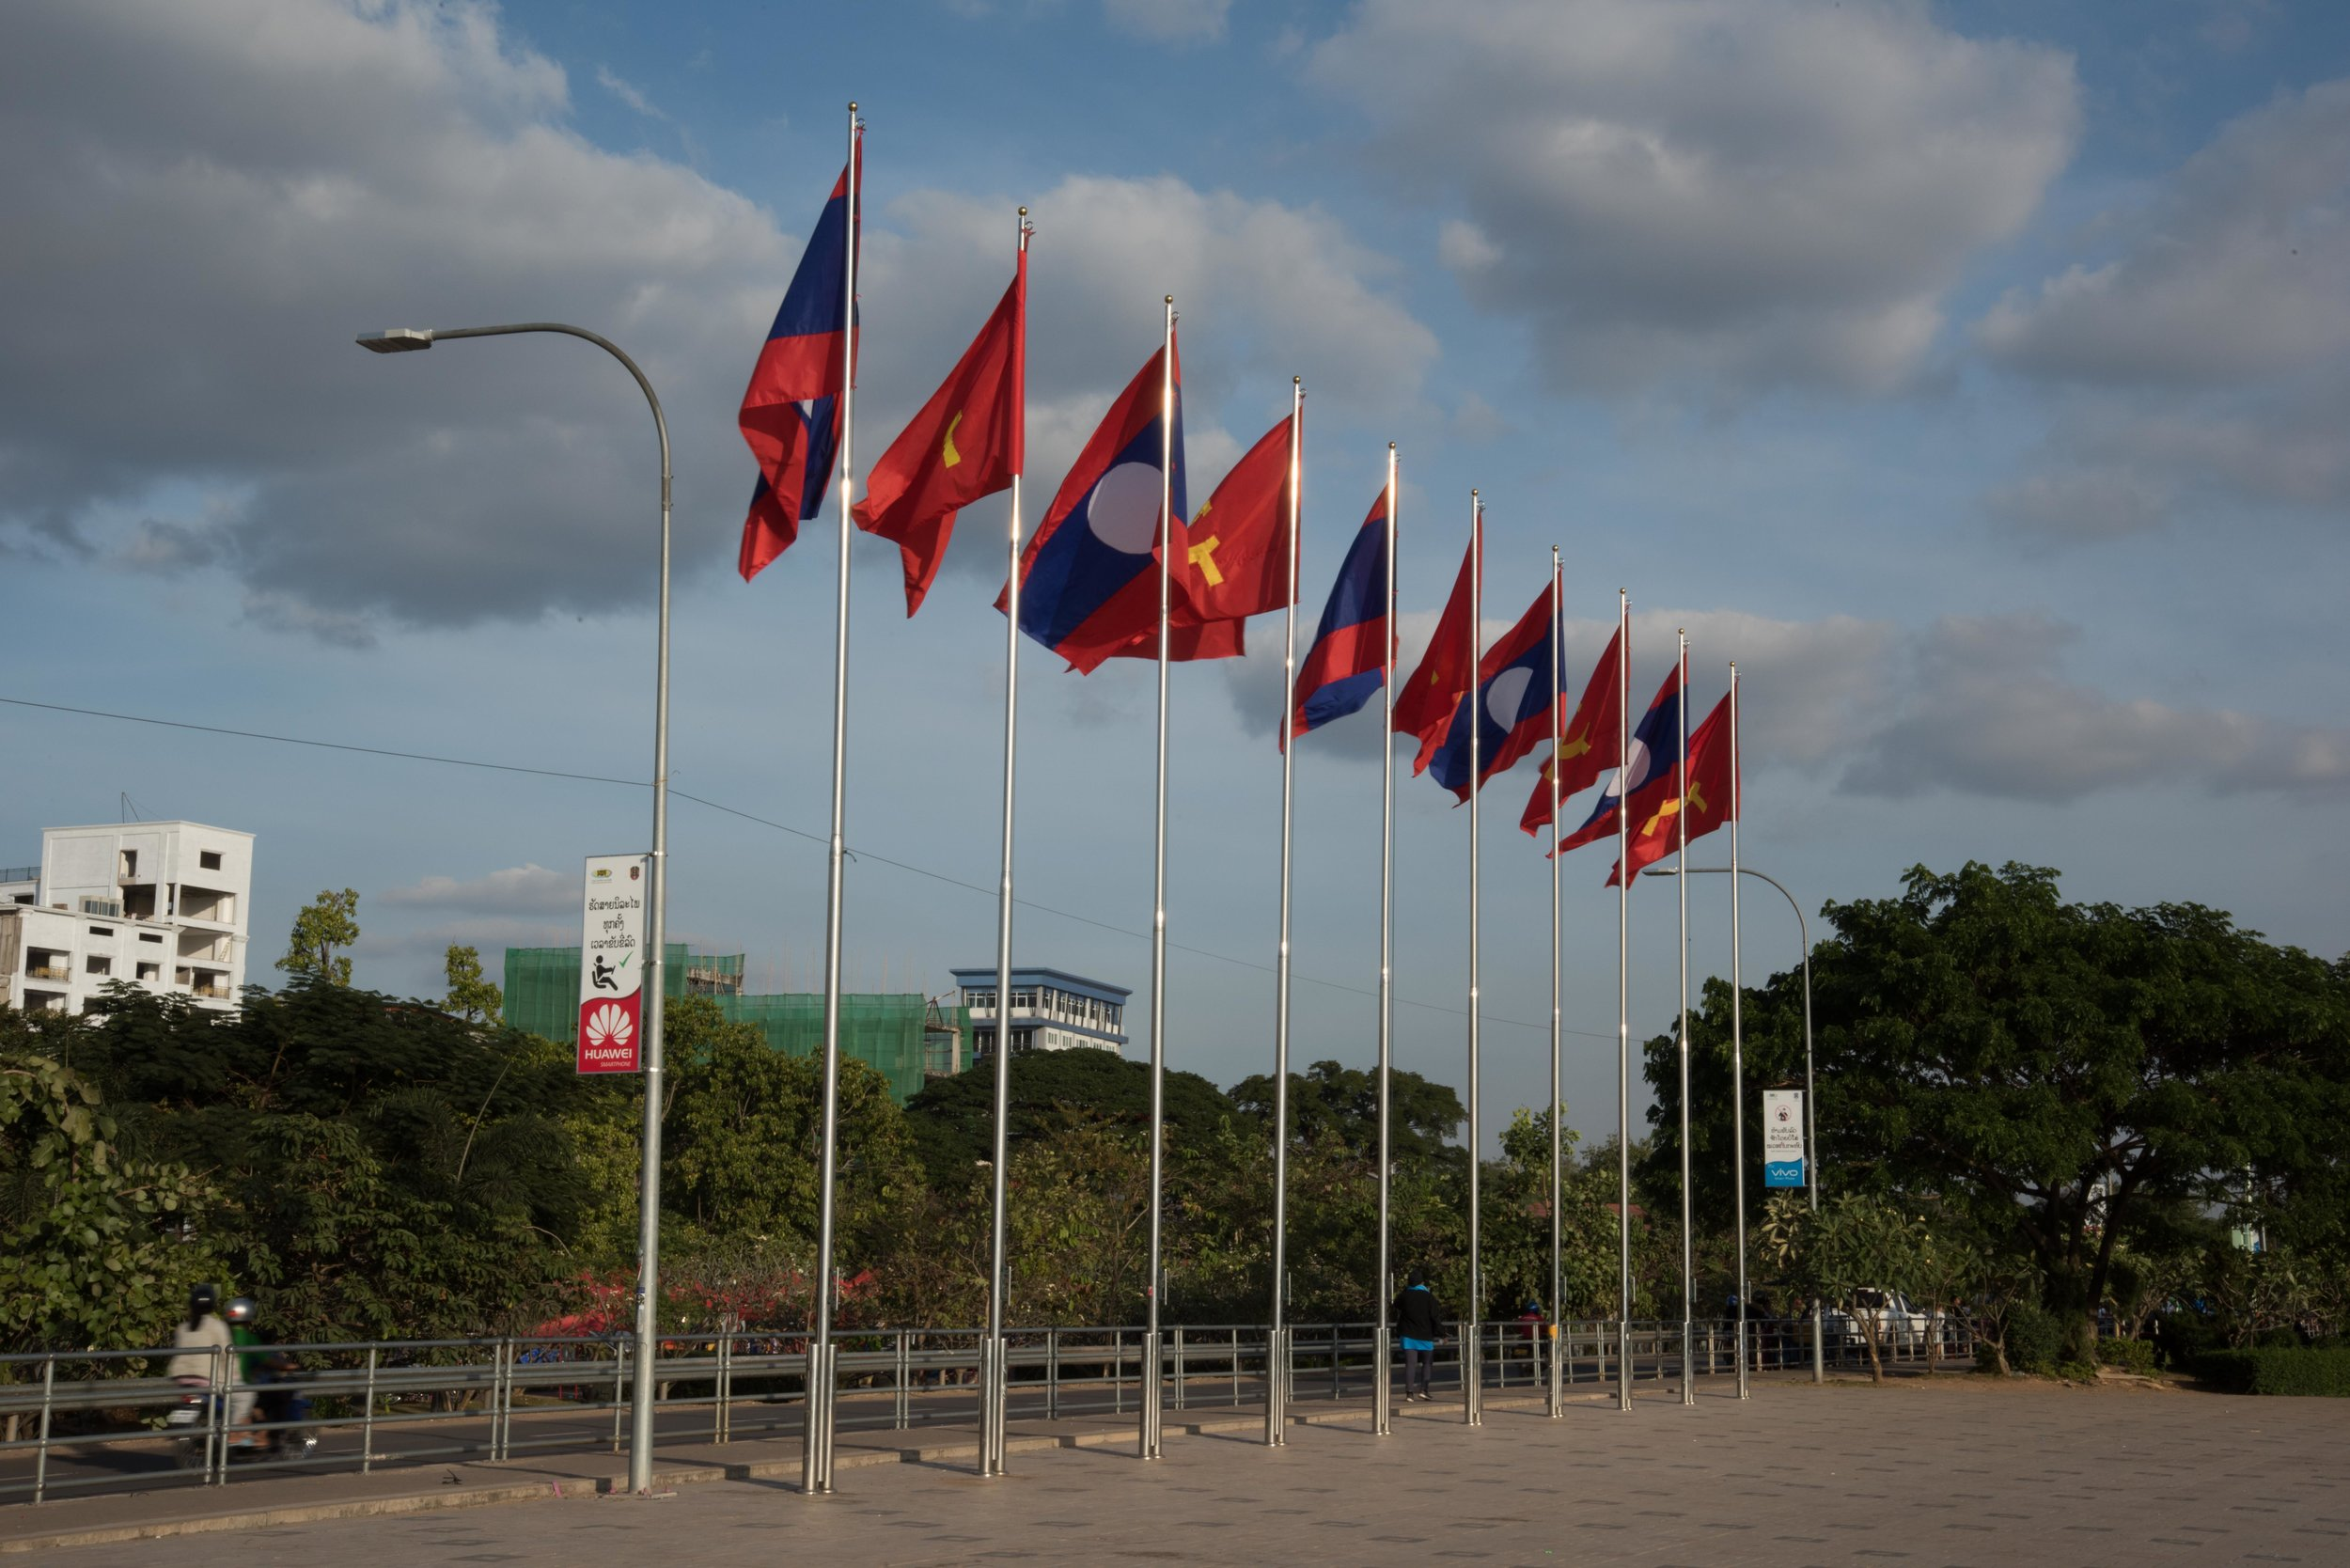 Flags, Vientiane, Laos, 27 Nov 2017.jpg